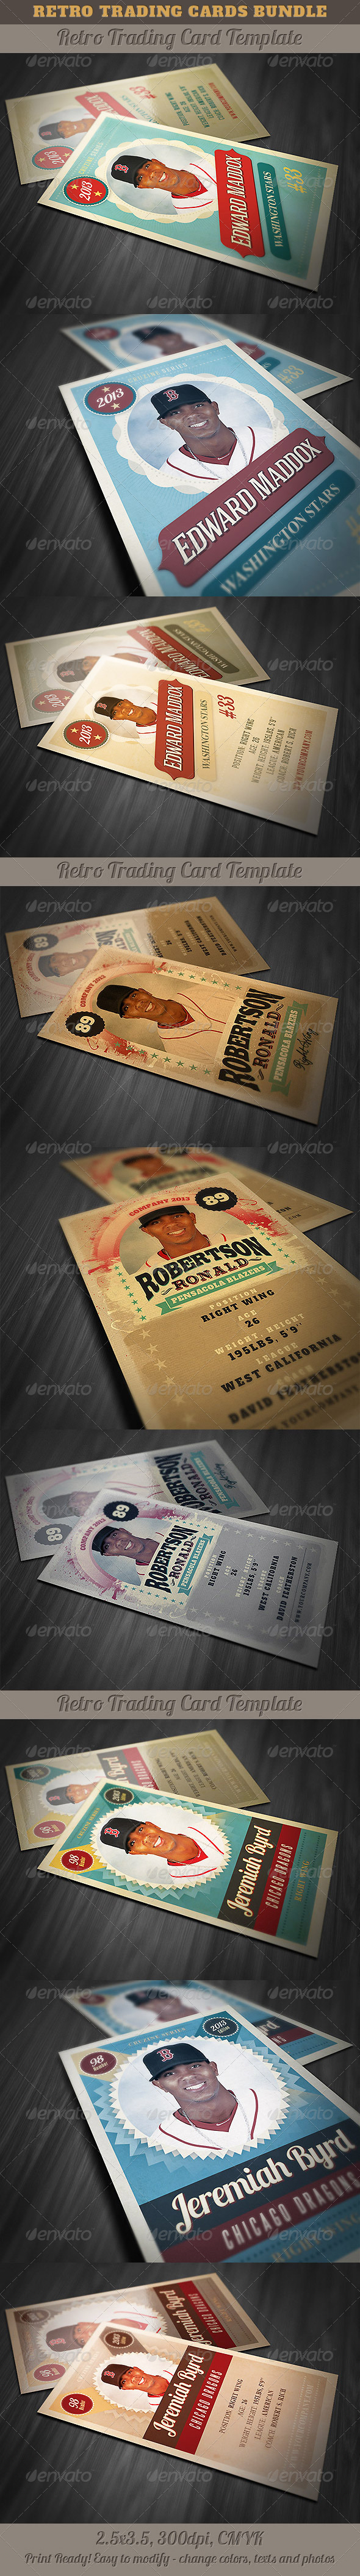 GraphicRiver Retro Trading Cards Bundle 5277095